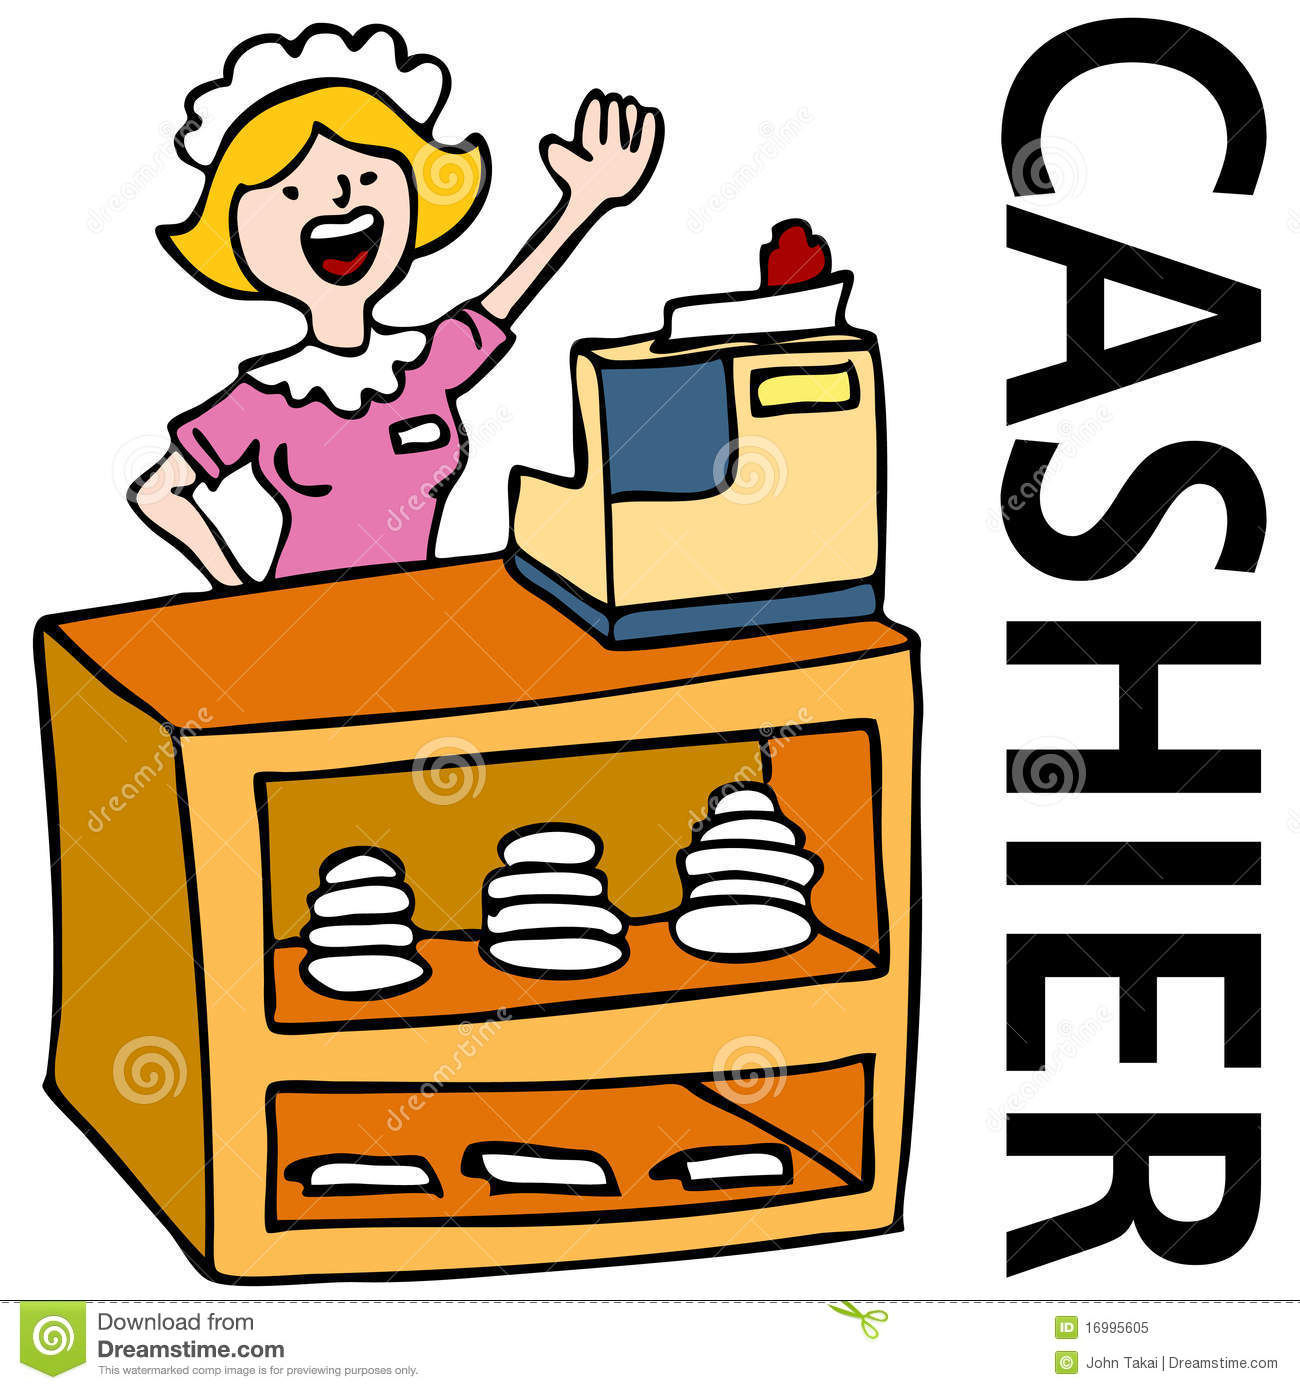 Cashier clipart male. Cafeteria free download best